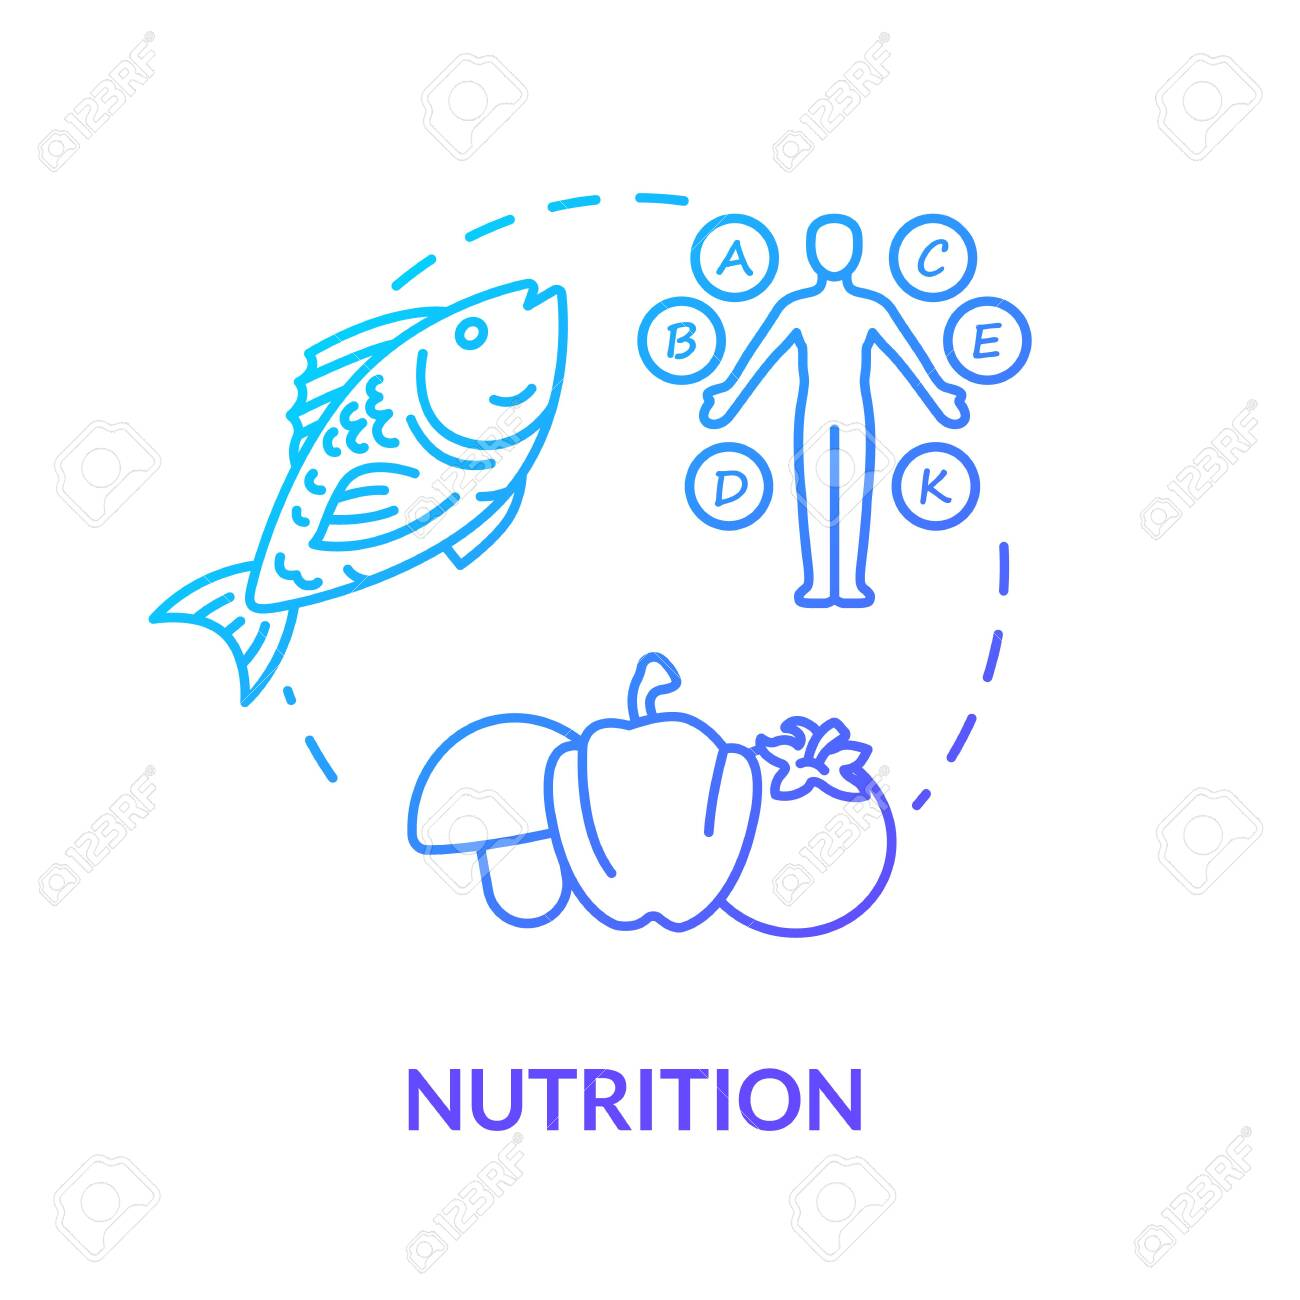 Nutrition Concept Icon Healthy Eating Balanced Diet Idea Thin Royalty Free Cliparts Vectors And Stock Illustration Image 140703302